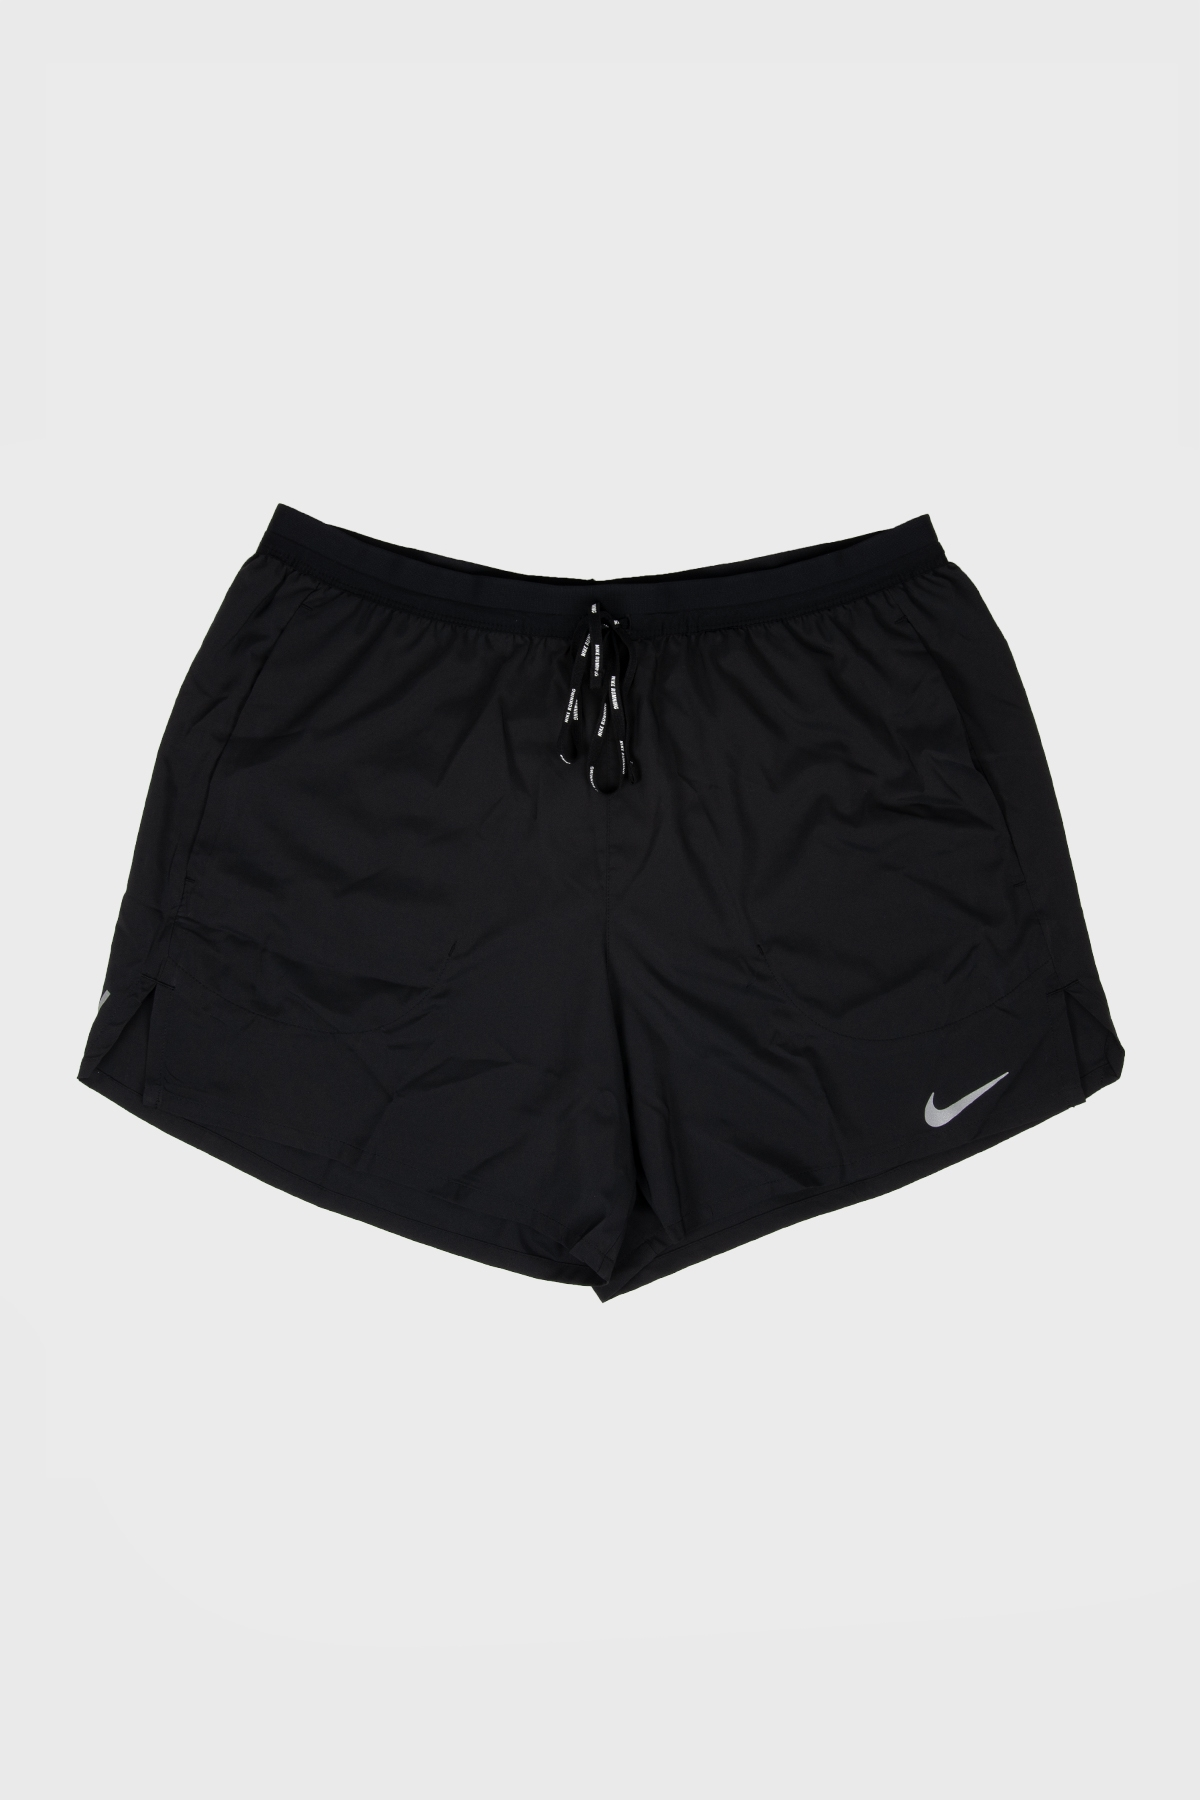 Nike - Nike Dri-FIT Flex Stride 13cm - Black